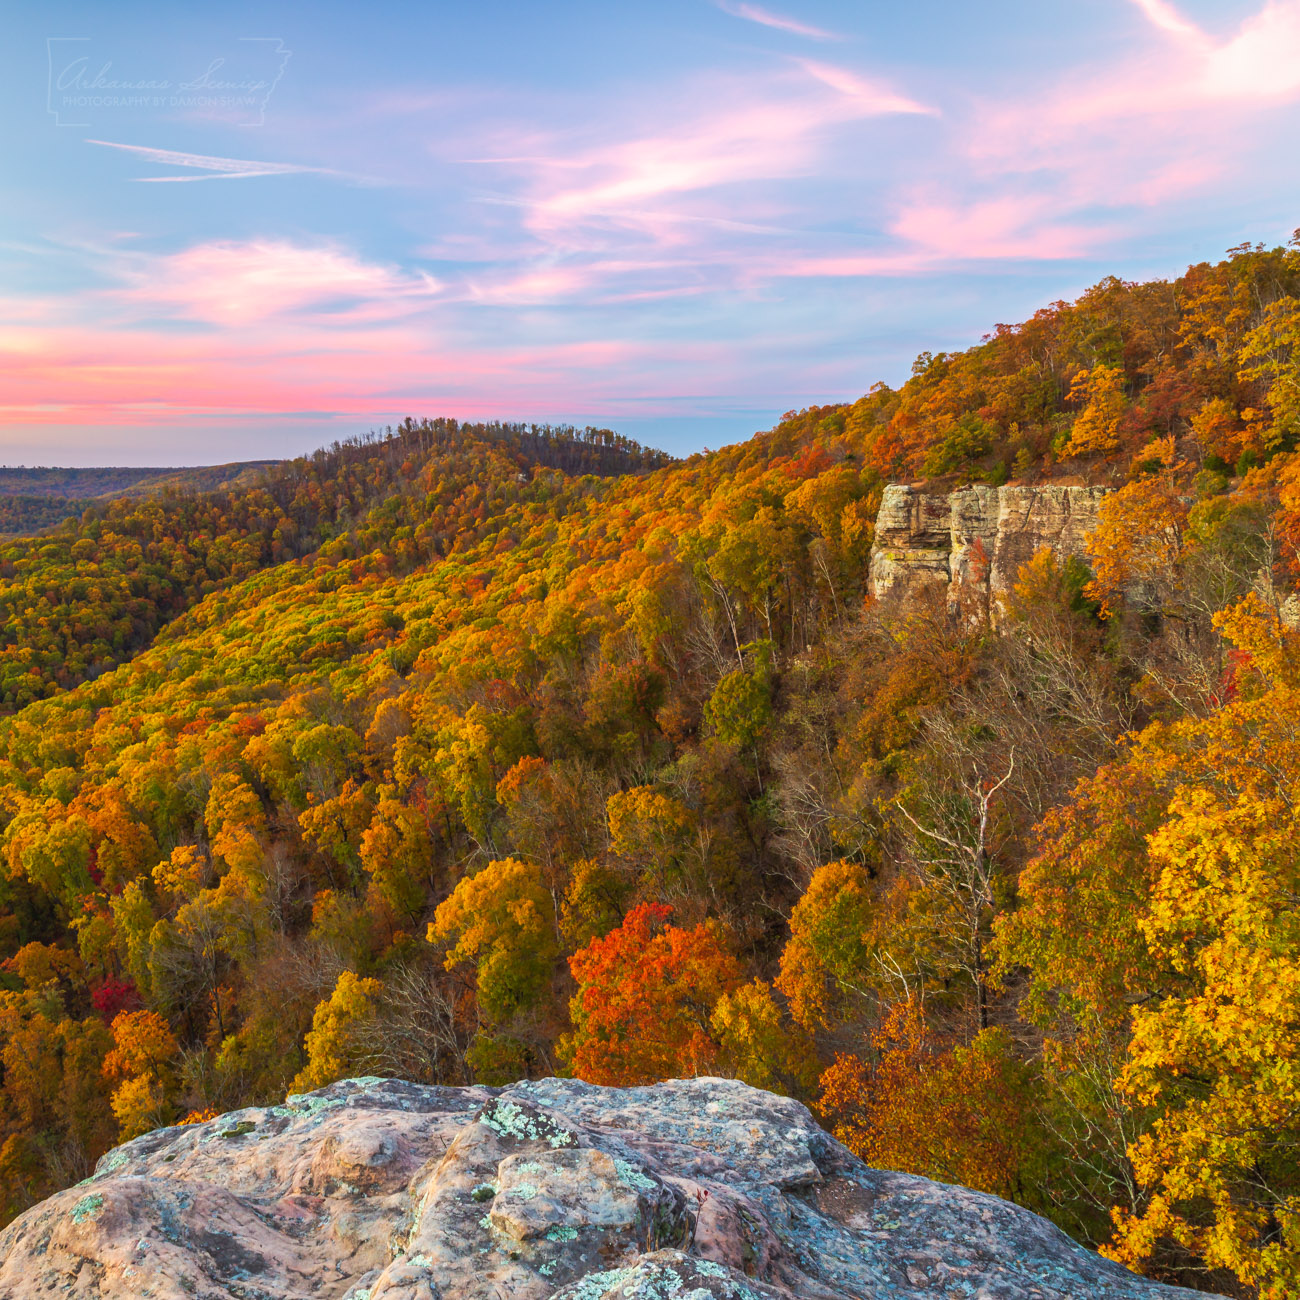 Fall color at White Rock Mountain in Franklin County on a November evening.